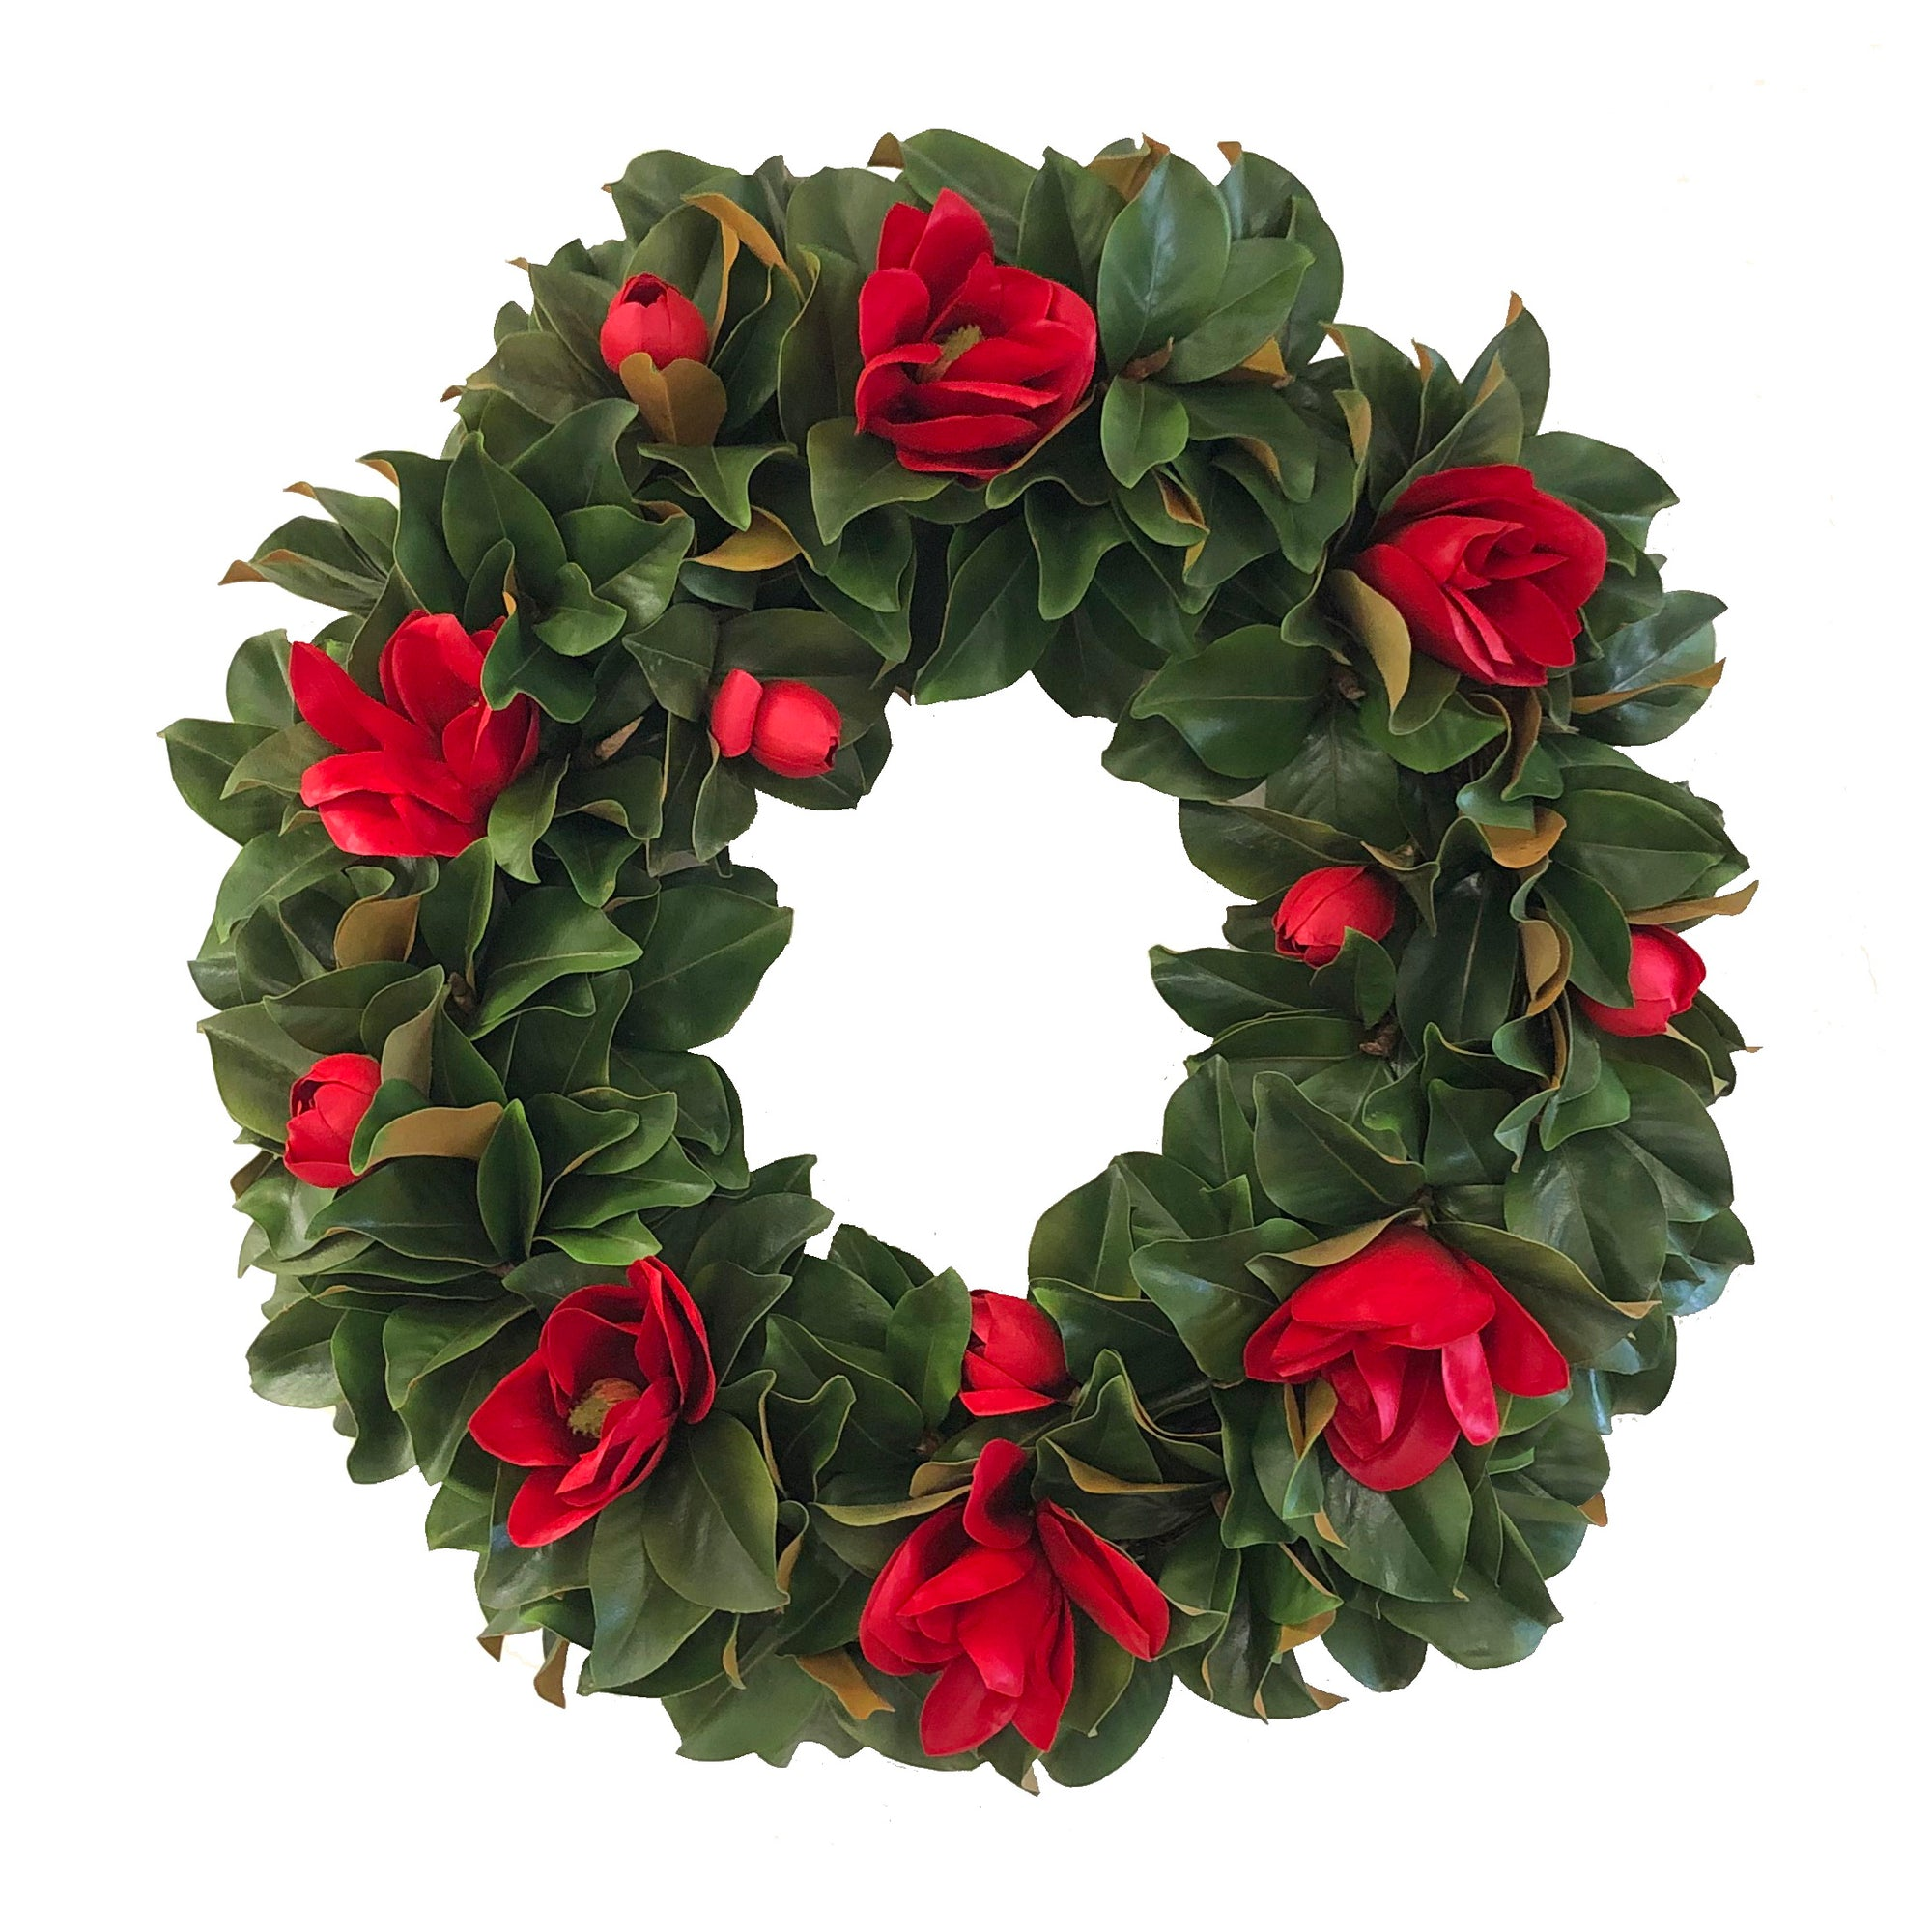 DELUXE MAGNOLIA MIX WREATH 36''